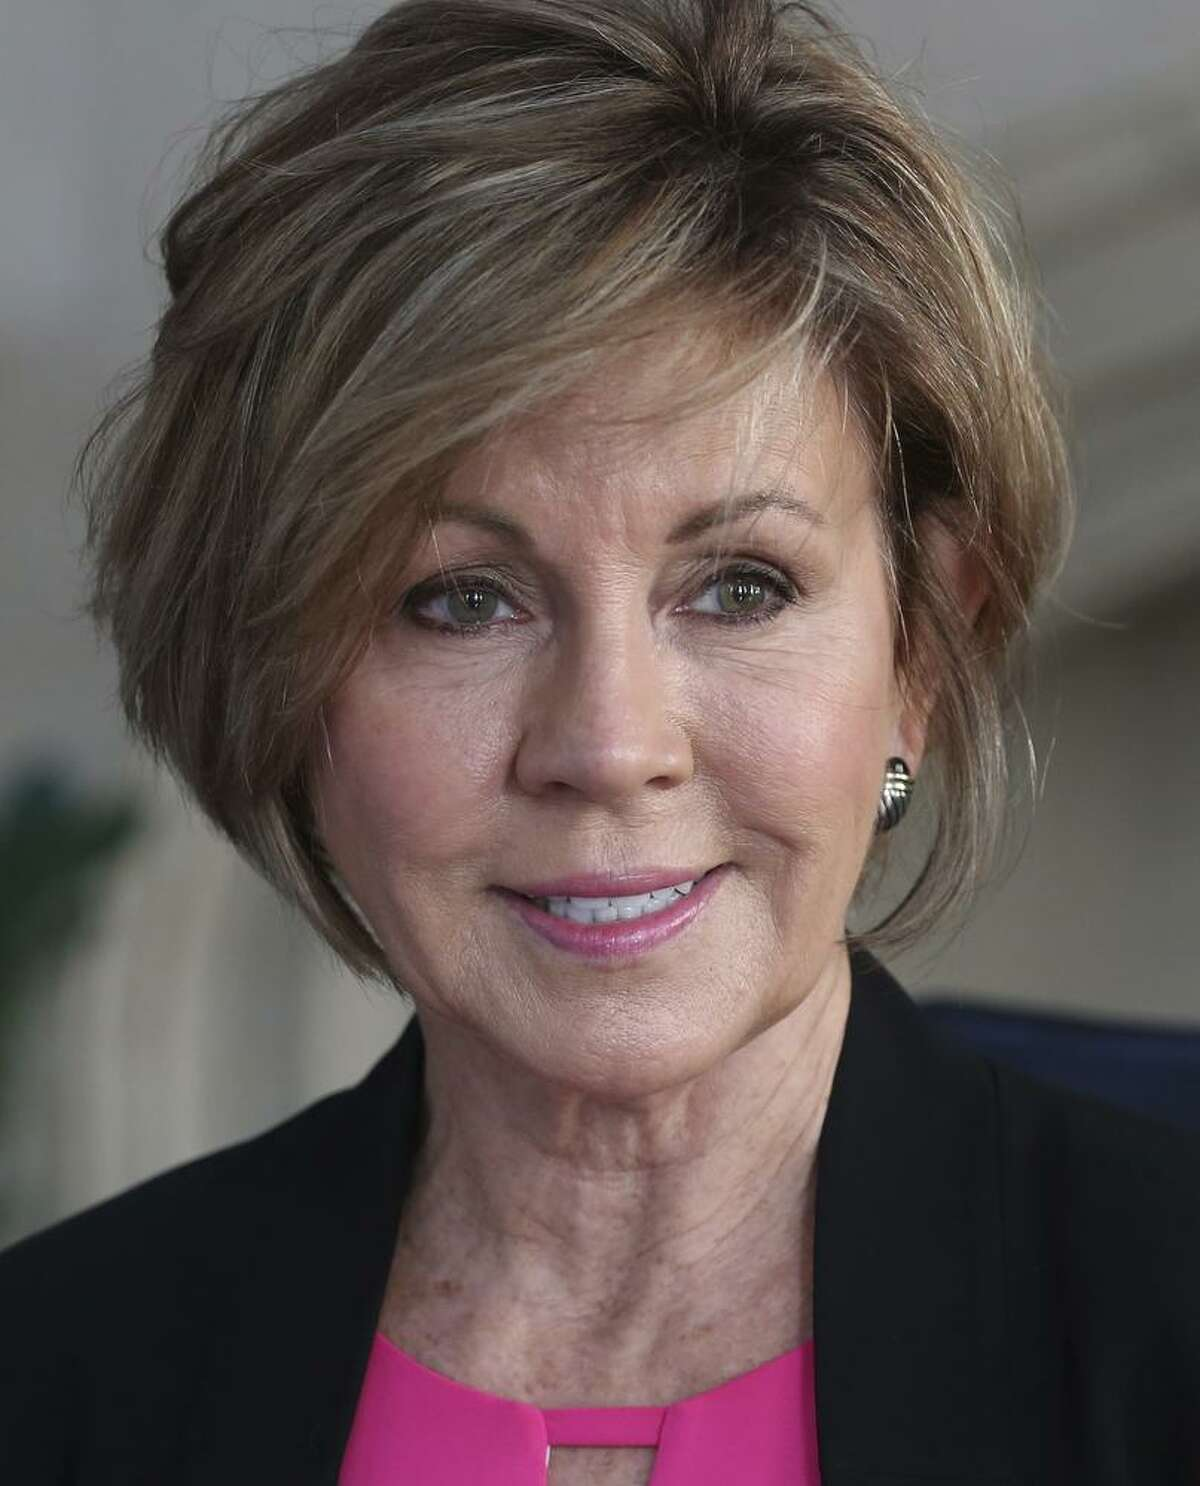 While Sheryl Sculley rewards loyalty, there's evidence she also punishes disloyalty.